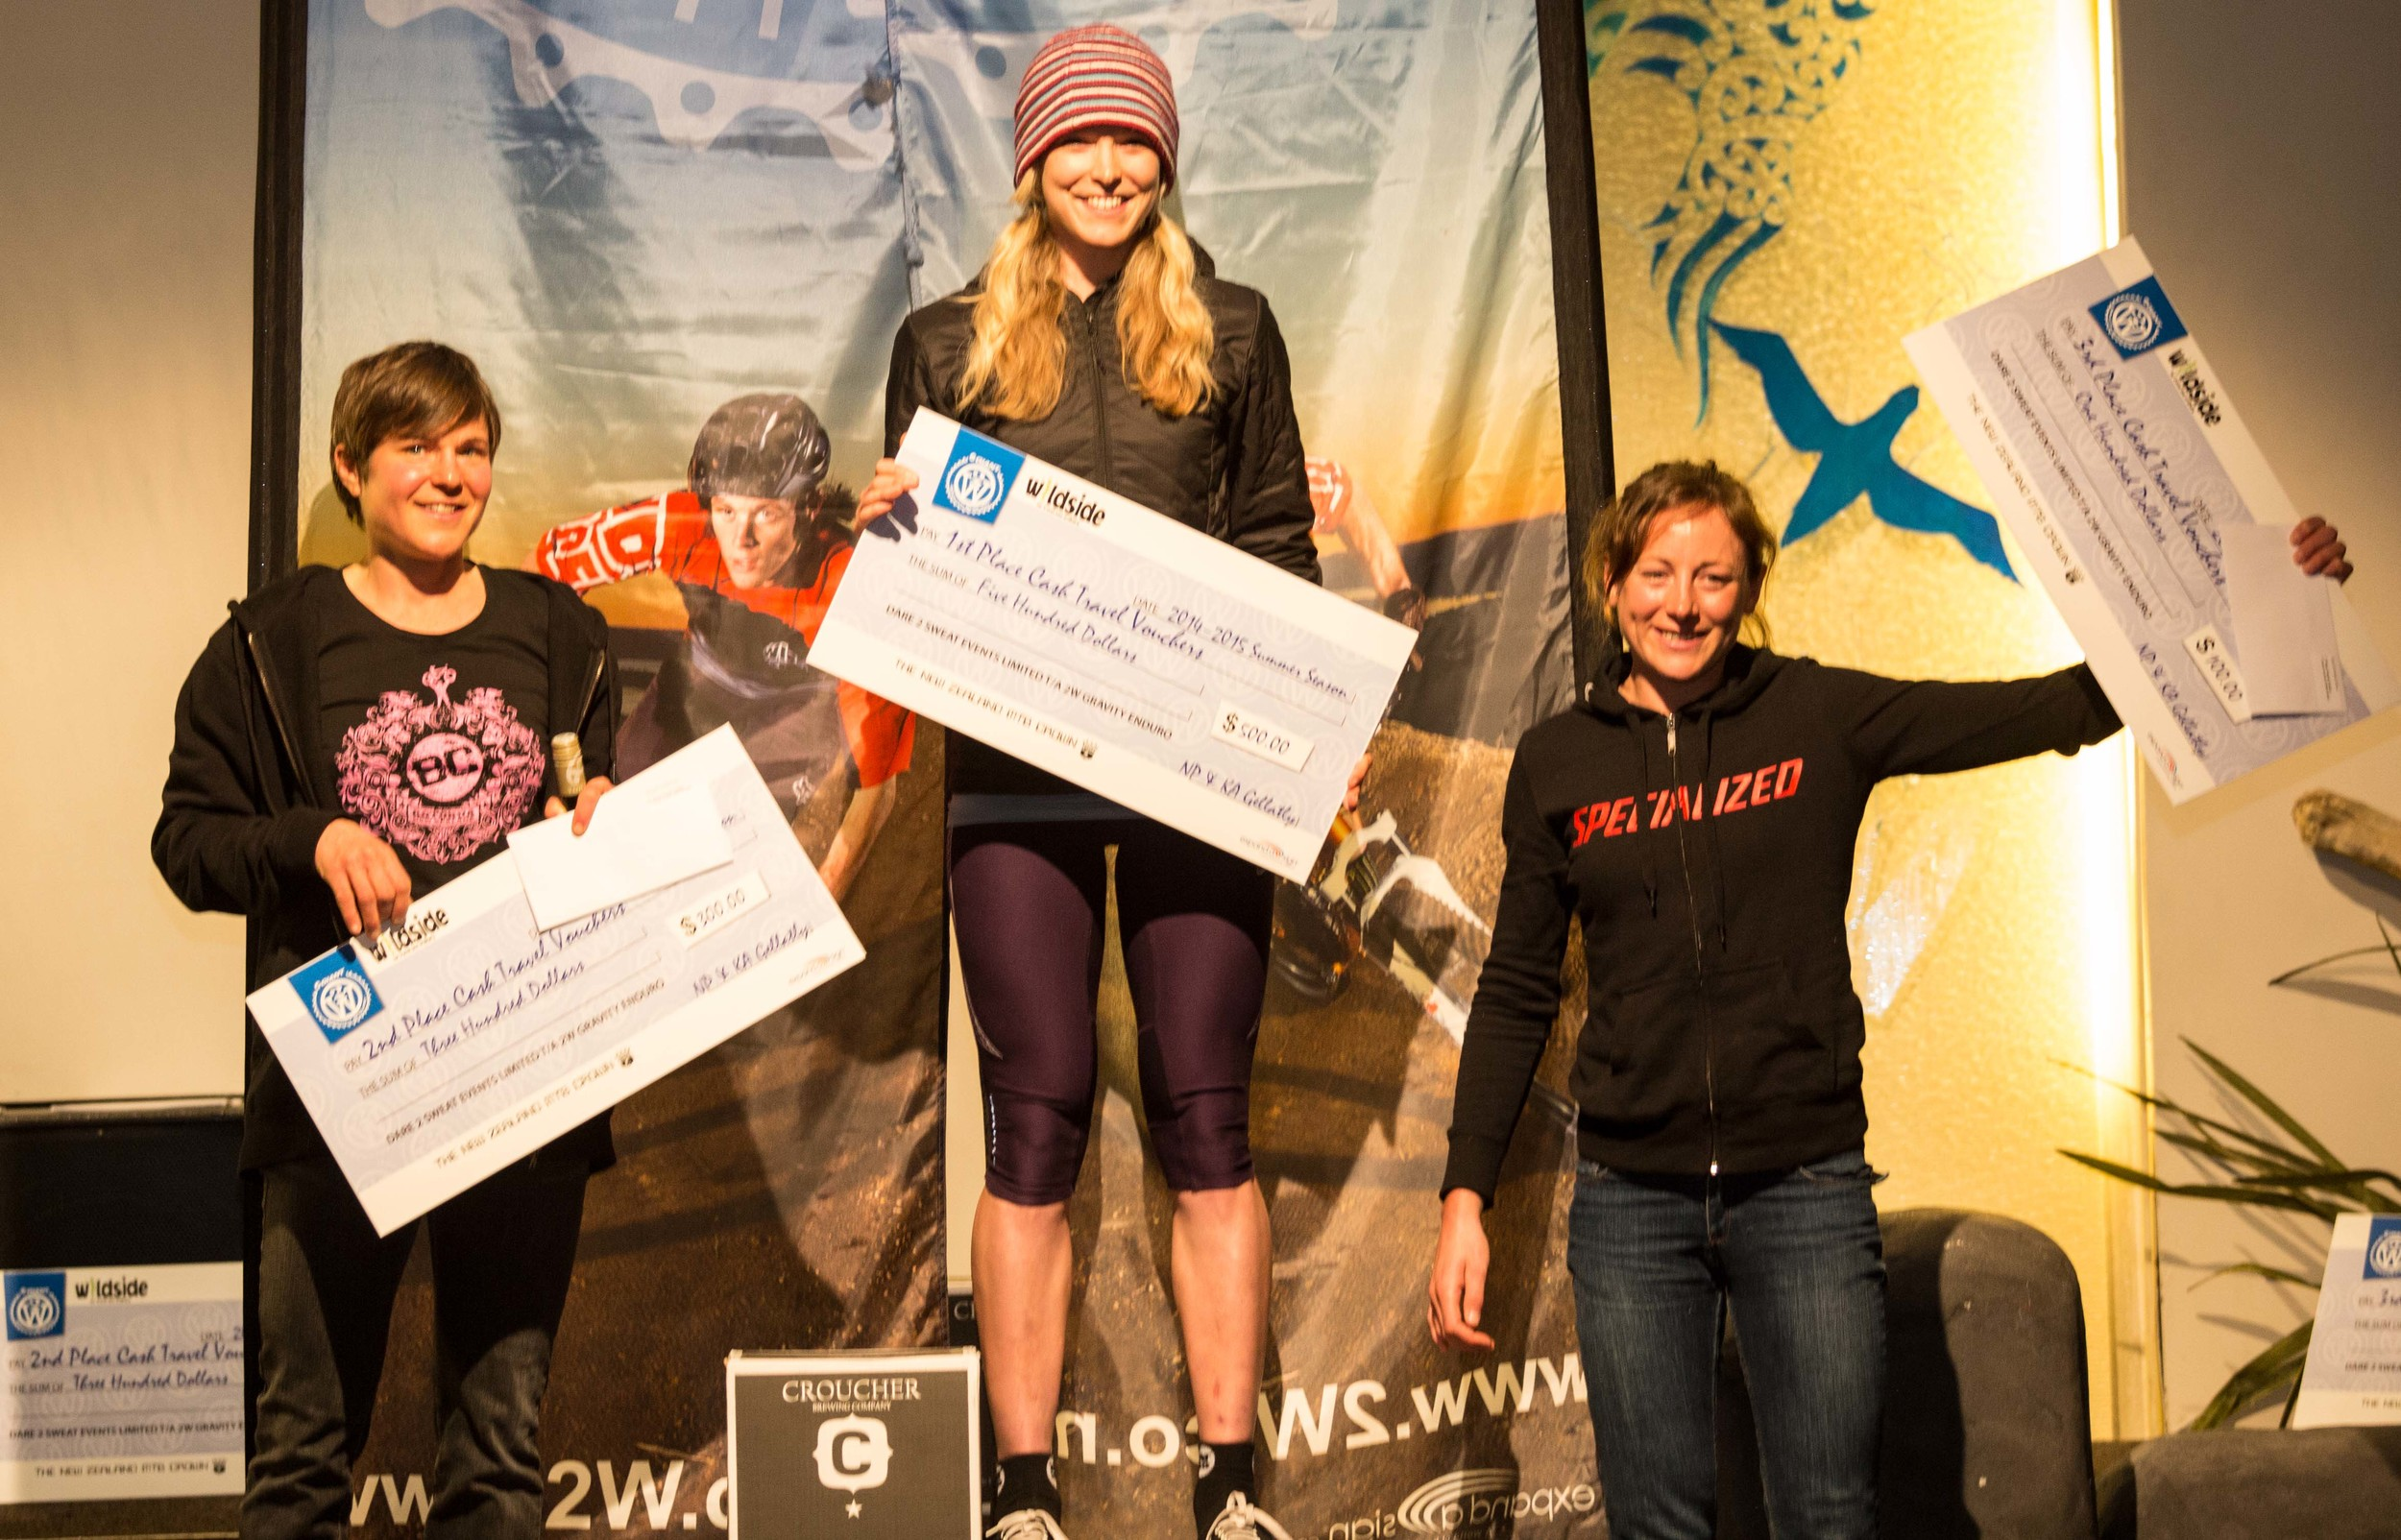 Jono Church rounds out the women's podium in fourth. Photo by Jamie Troughton Dscribe Media Services